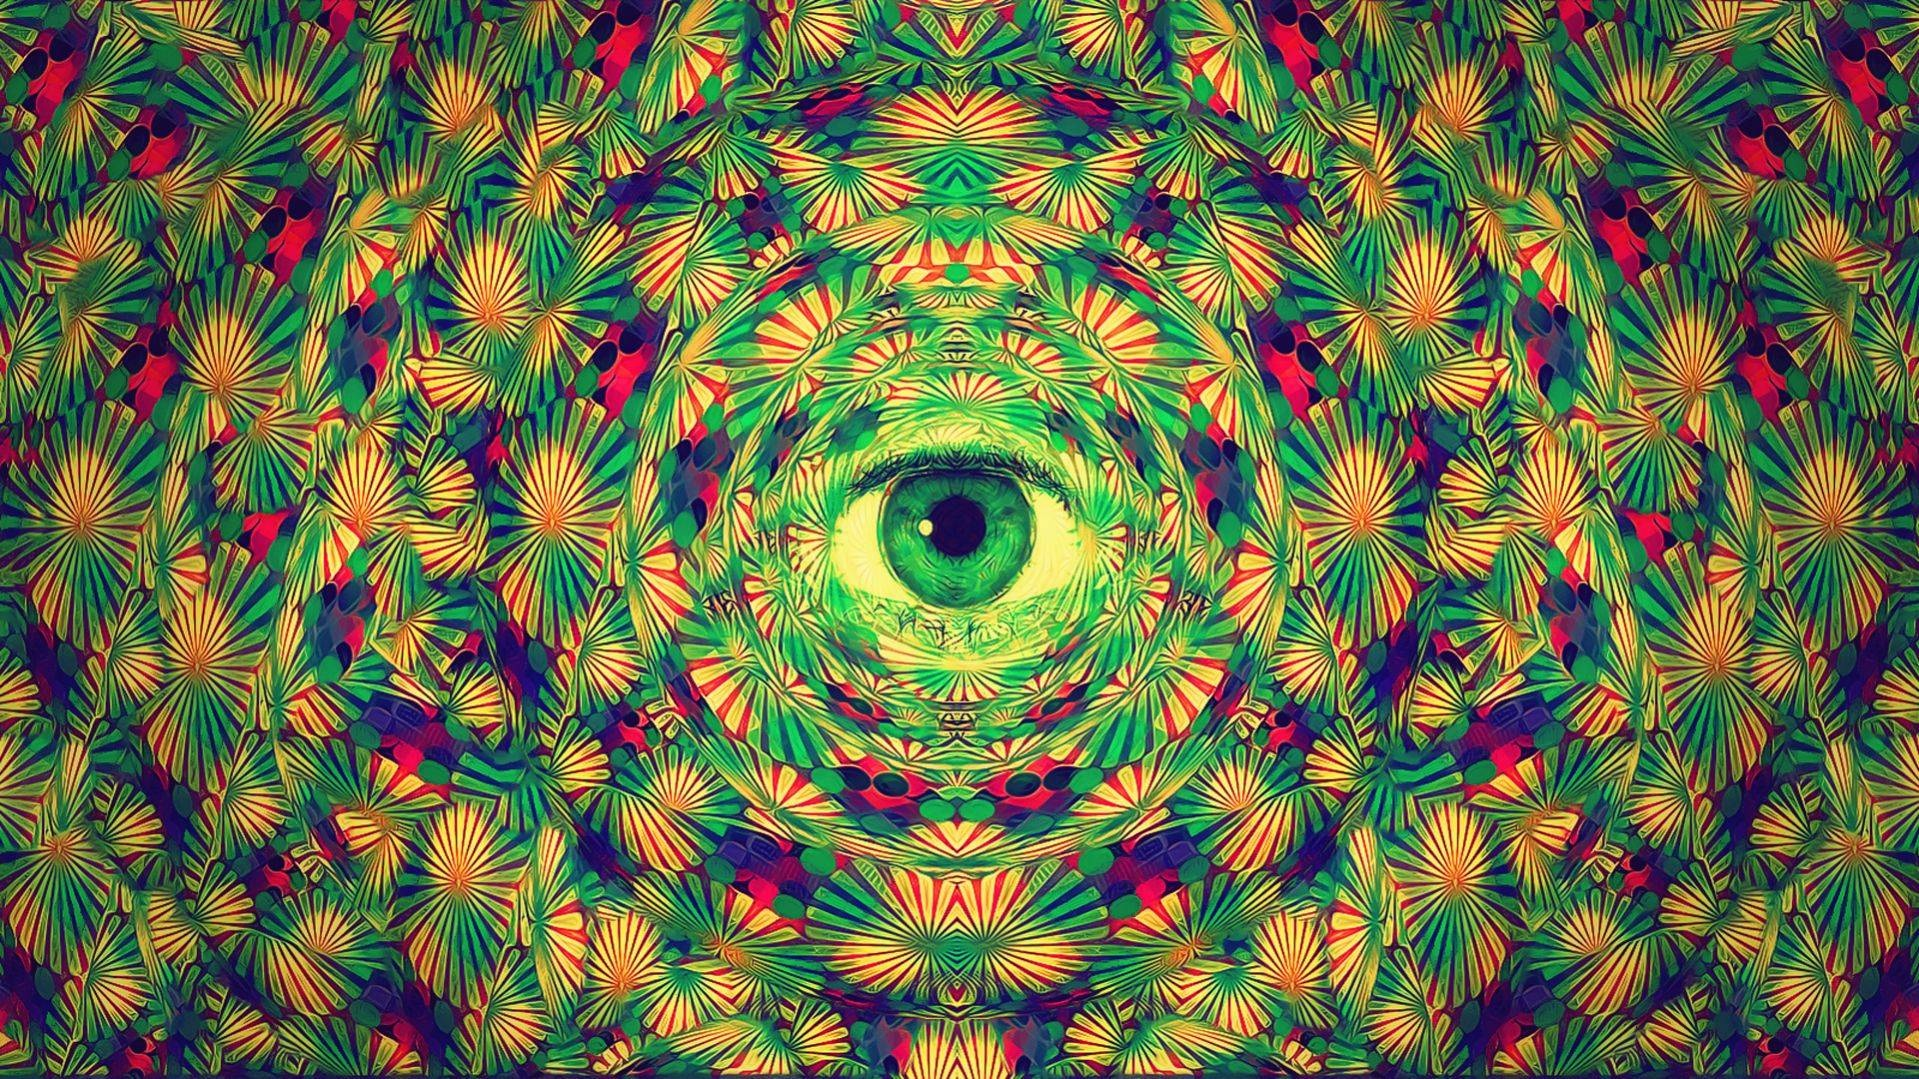 HD Trippy screensaver For Laptop